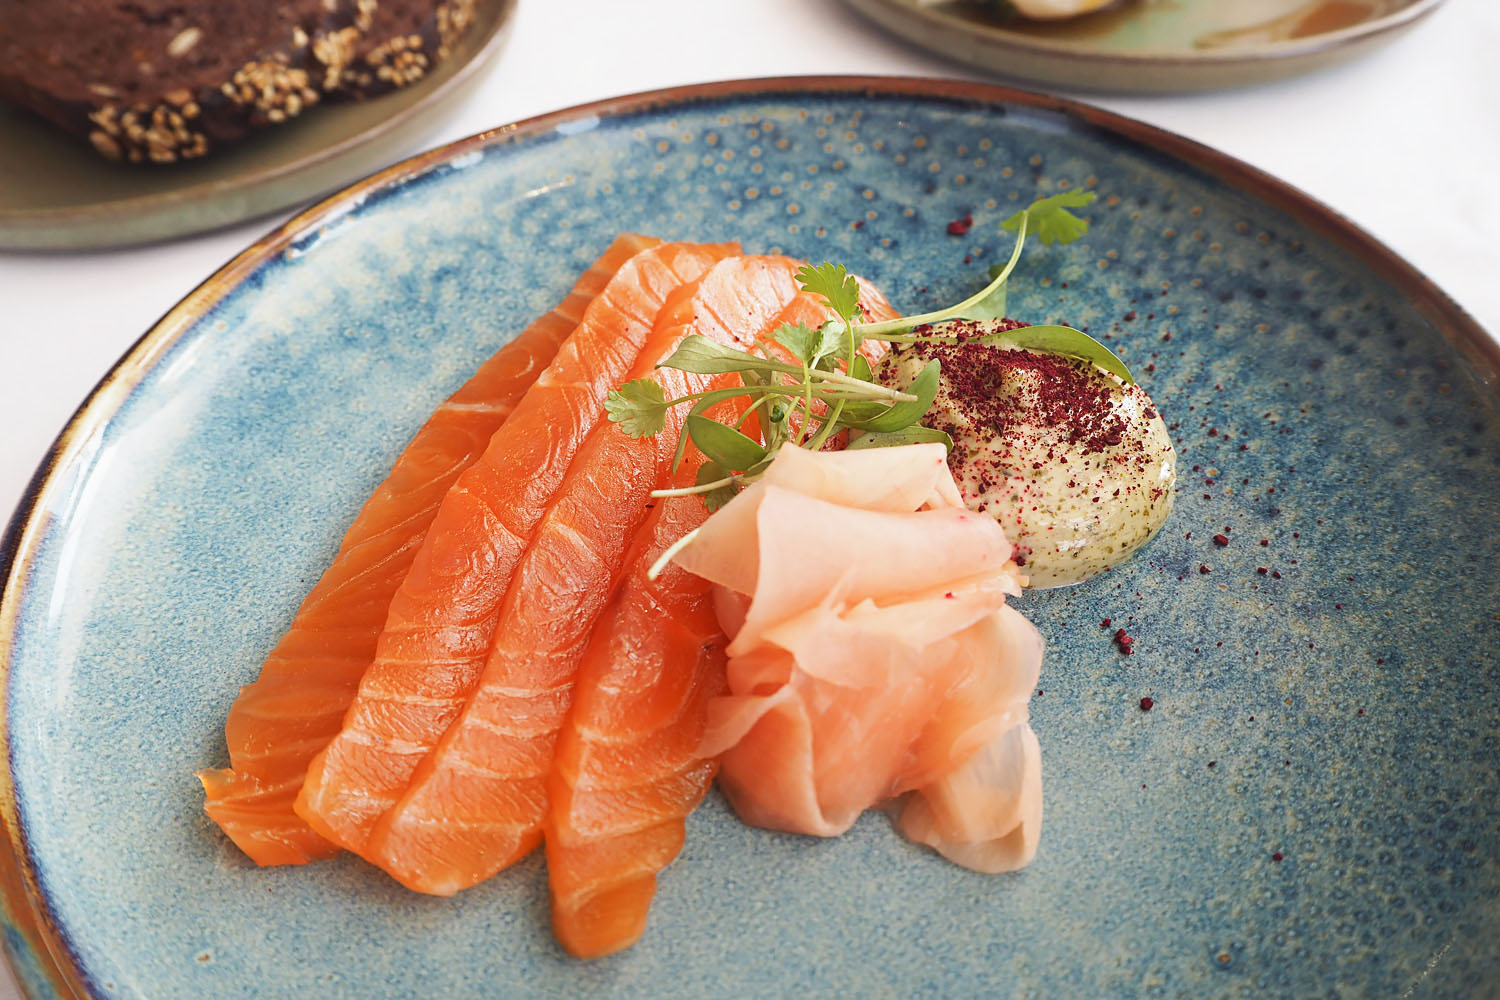 Kombu cured Salmon - A Michelin starred Brunch menu at Galvin at Windows, 28th floor of Hilton Park Lane hotel, London